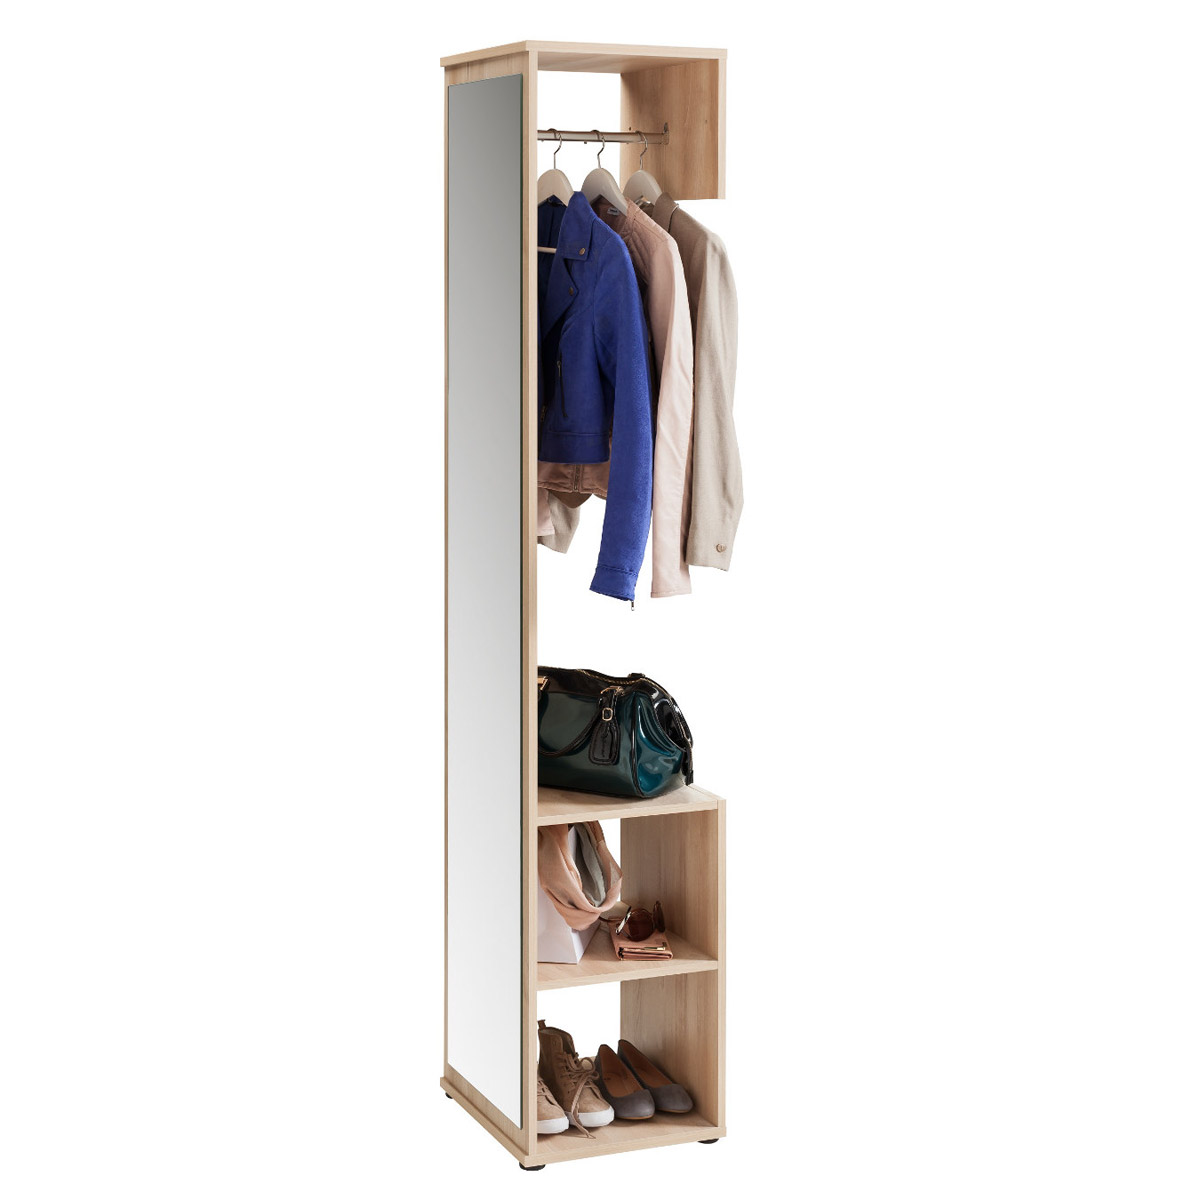 garderobe alfred garderobenschrank mit spiegel in edelbuche ebay. Black Bedroom Furniture Sets. Home Design Ideas